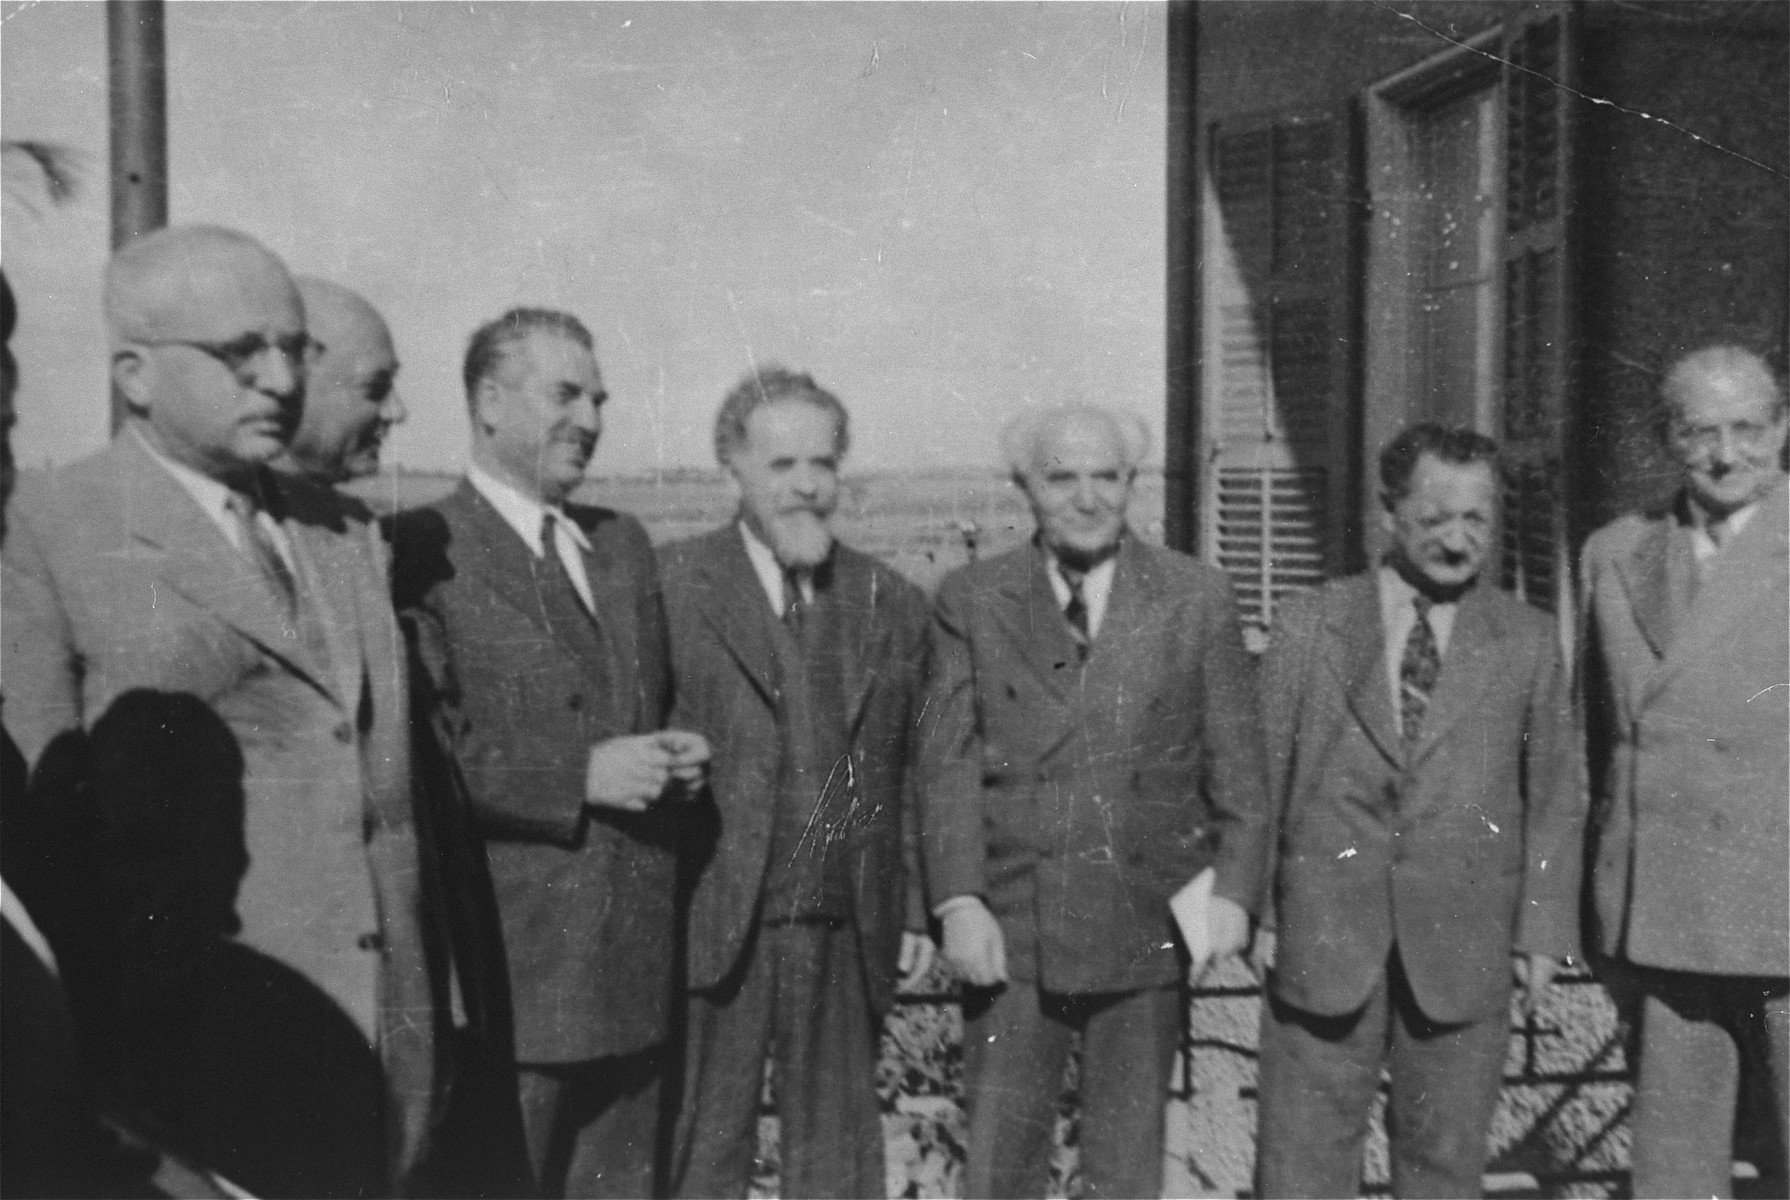 David Ben-Gurion poses with other Jewish leaders in Haifa during the transfer of Exodus 1947 passengers.